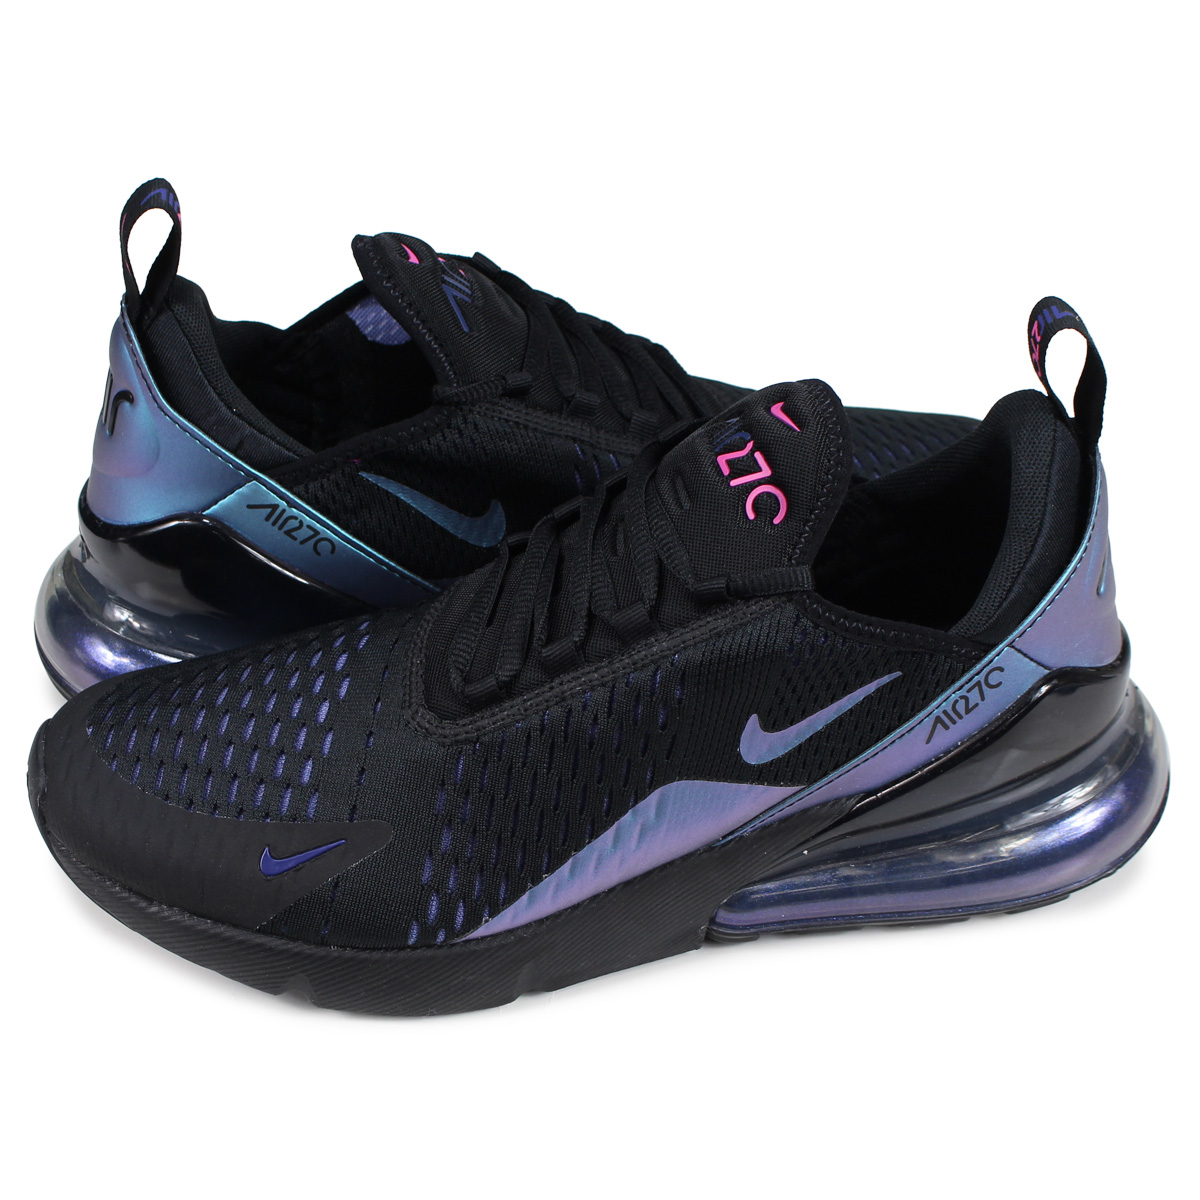 Nike NIKE Air Max 270 sneakers men AIR MAX 270 black black AH8050 020